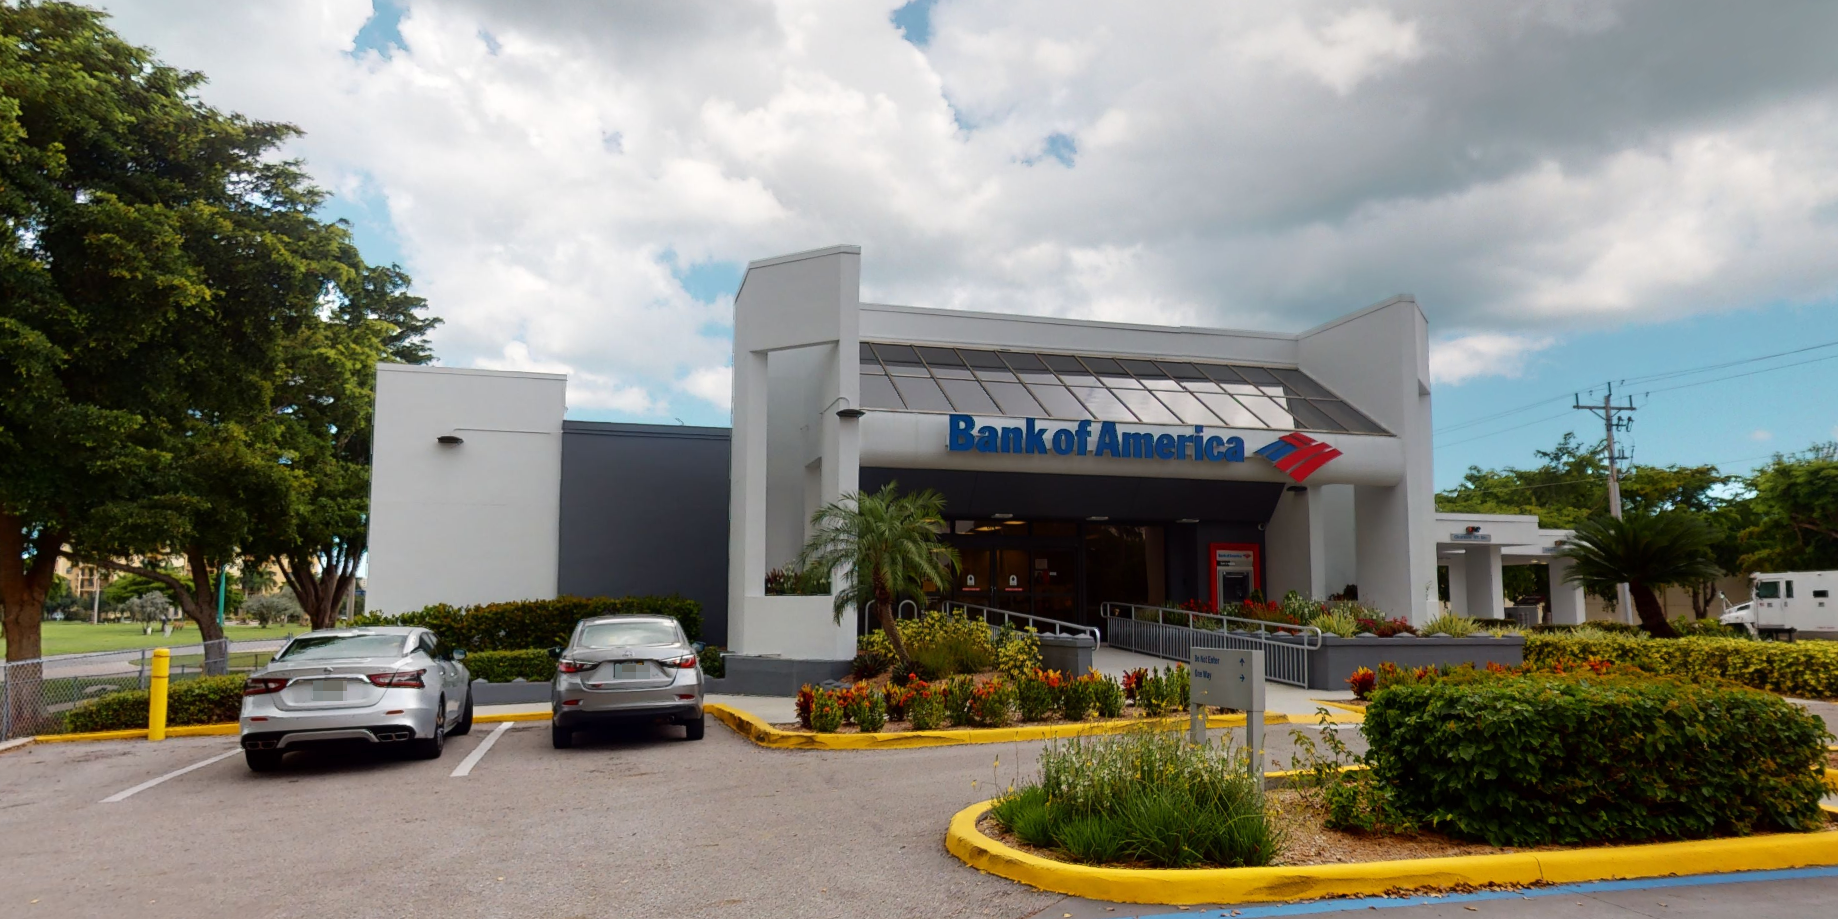 Bank of America financial center with drive-thru ATM | 614 Bald Eagle Dr, Marco Island, FL 34145